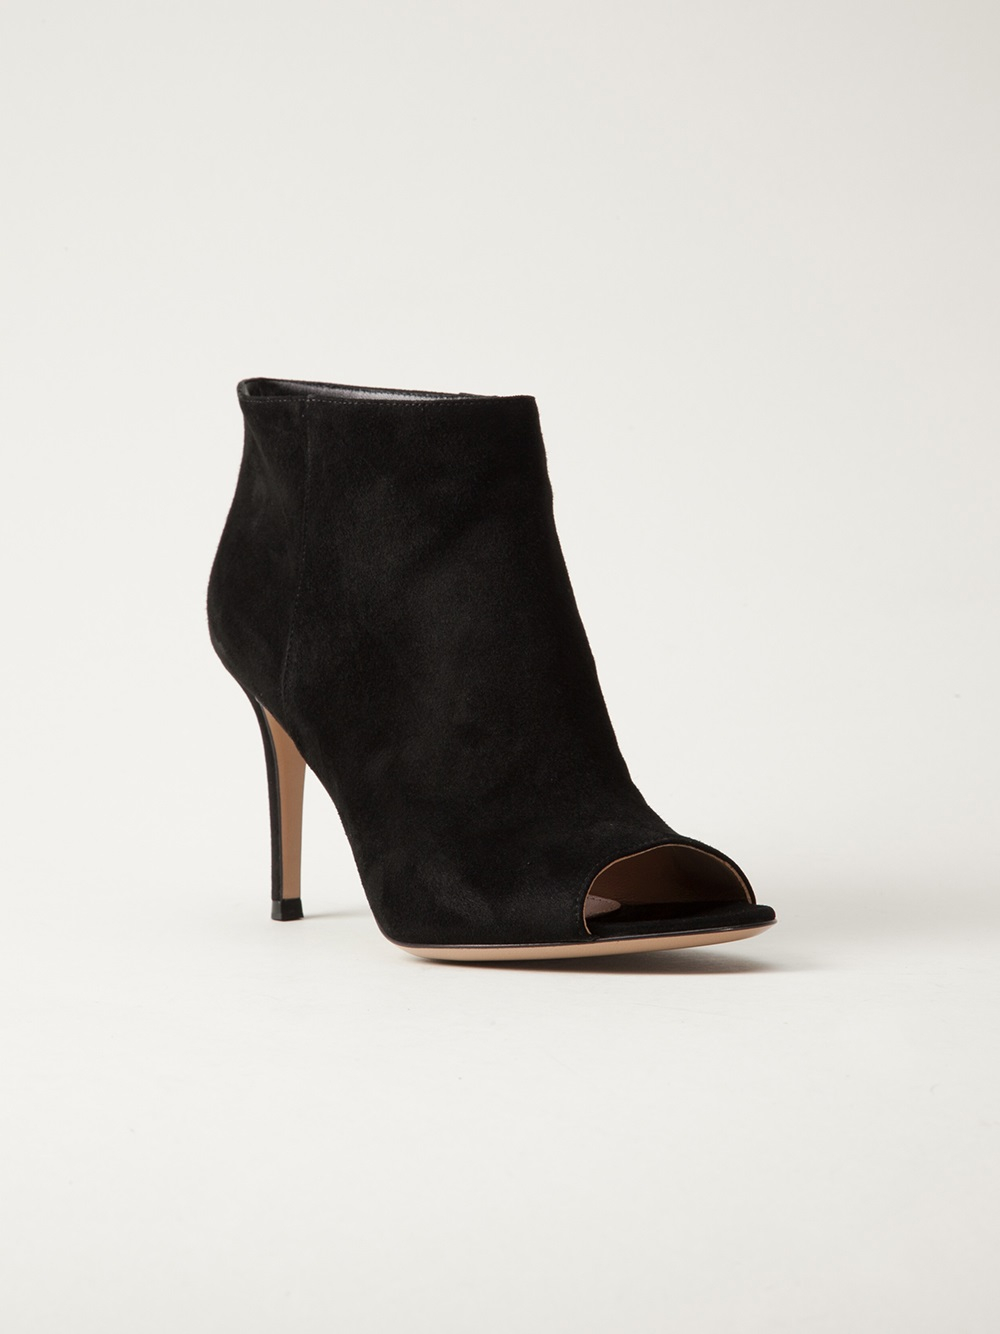 You'll be rockin' these black booties everywhere! They feature a gold back zipper closure with a fringe detail, cut outs on the side for a unique look, a peep toe, and a high block heel.